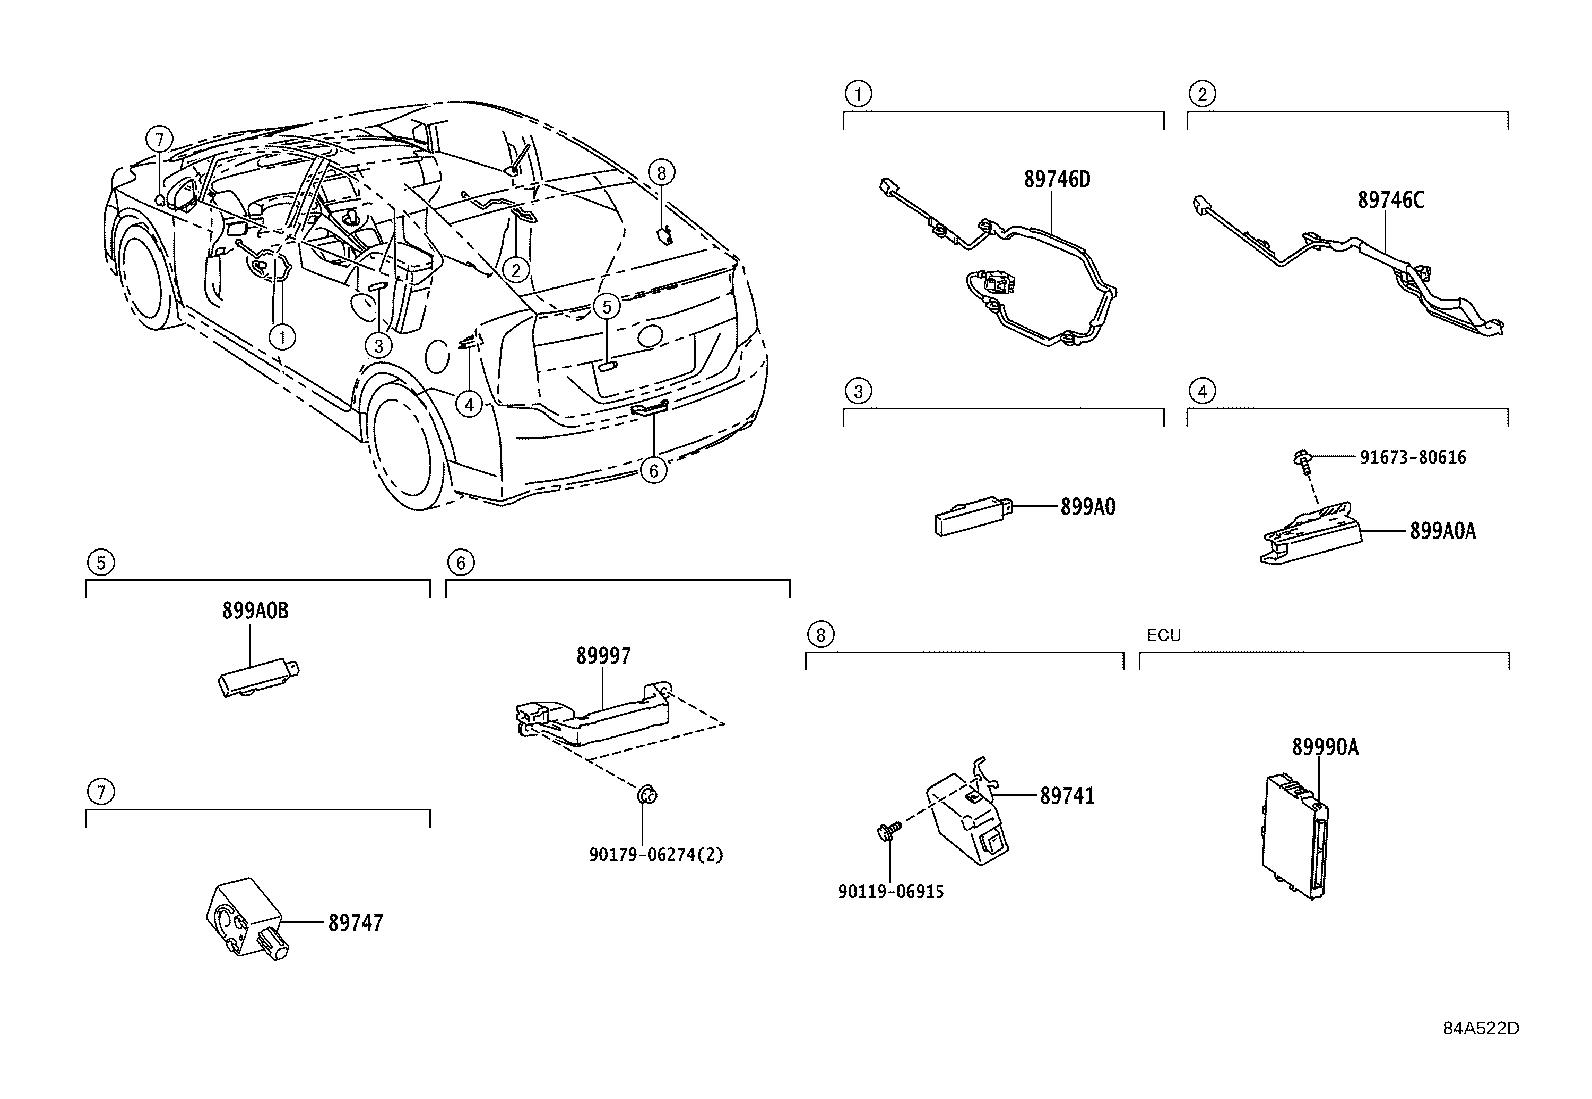 Toyota Prius Harness, electrical key wire, no. 1. Door